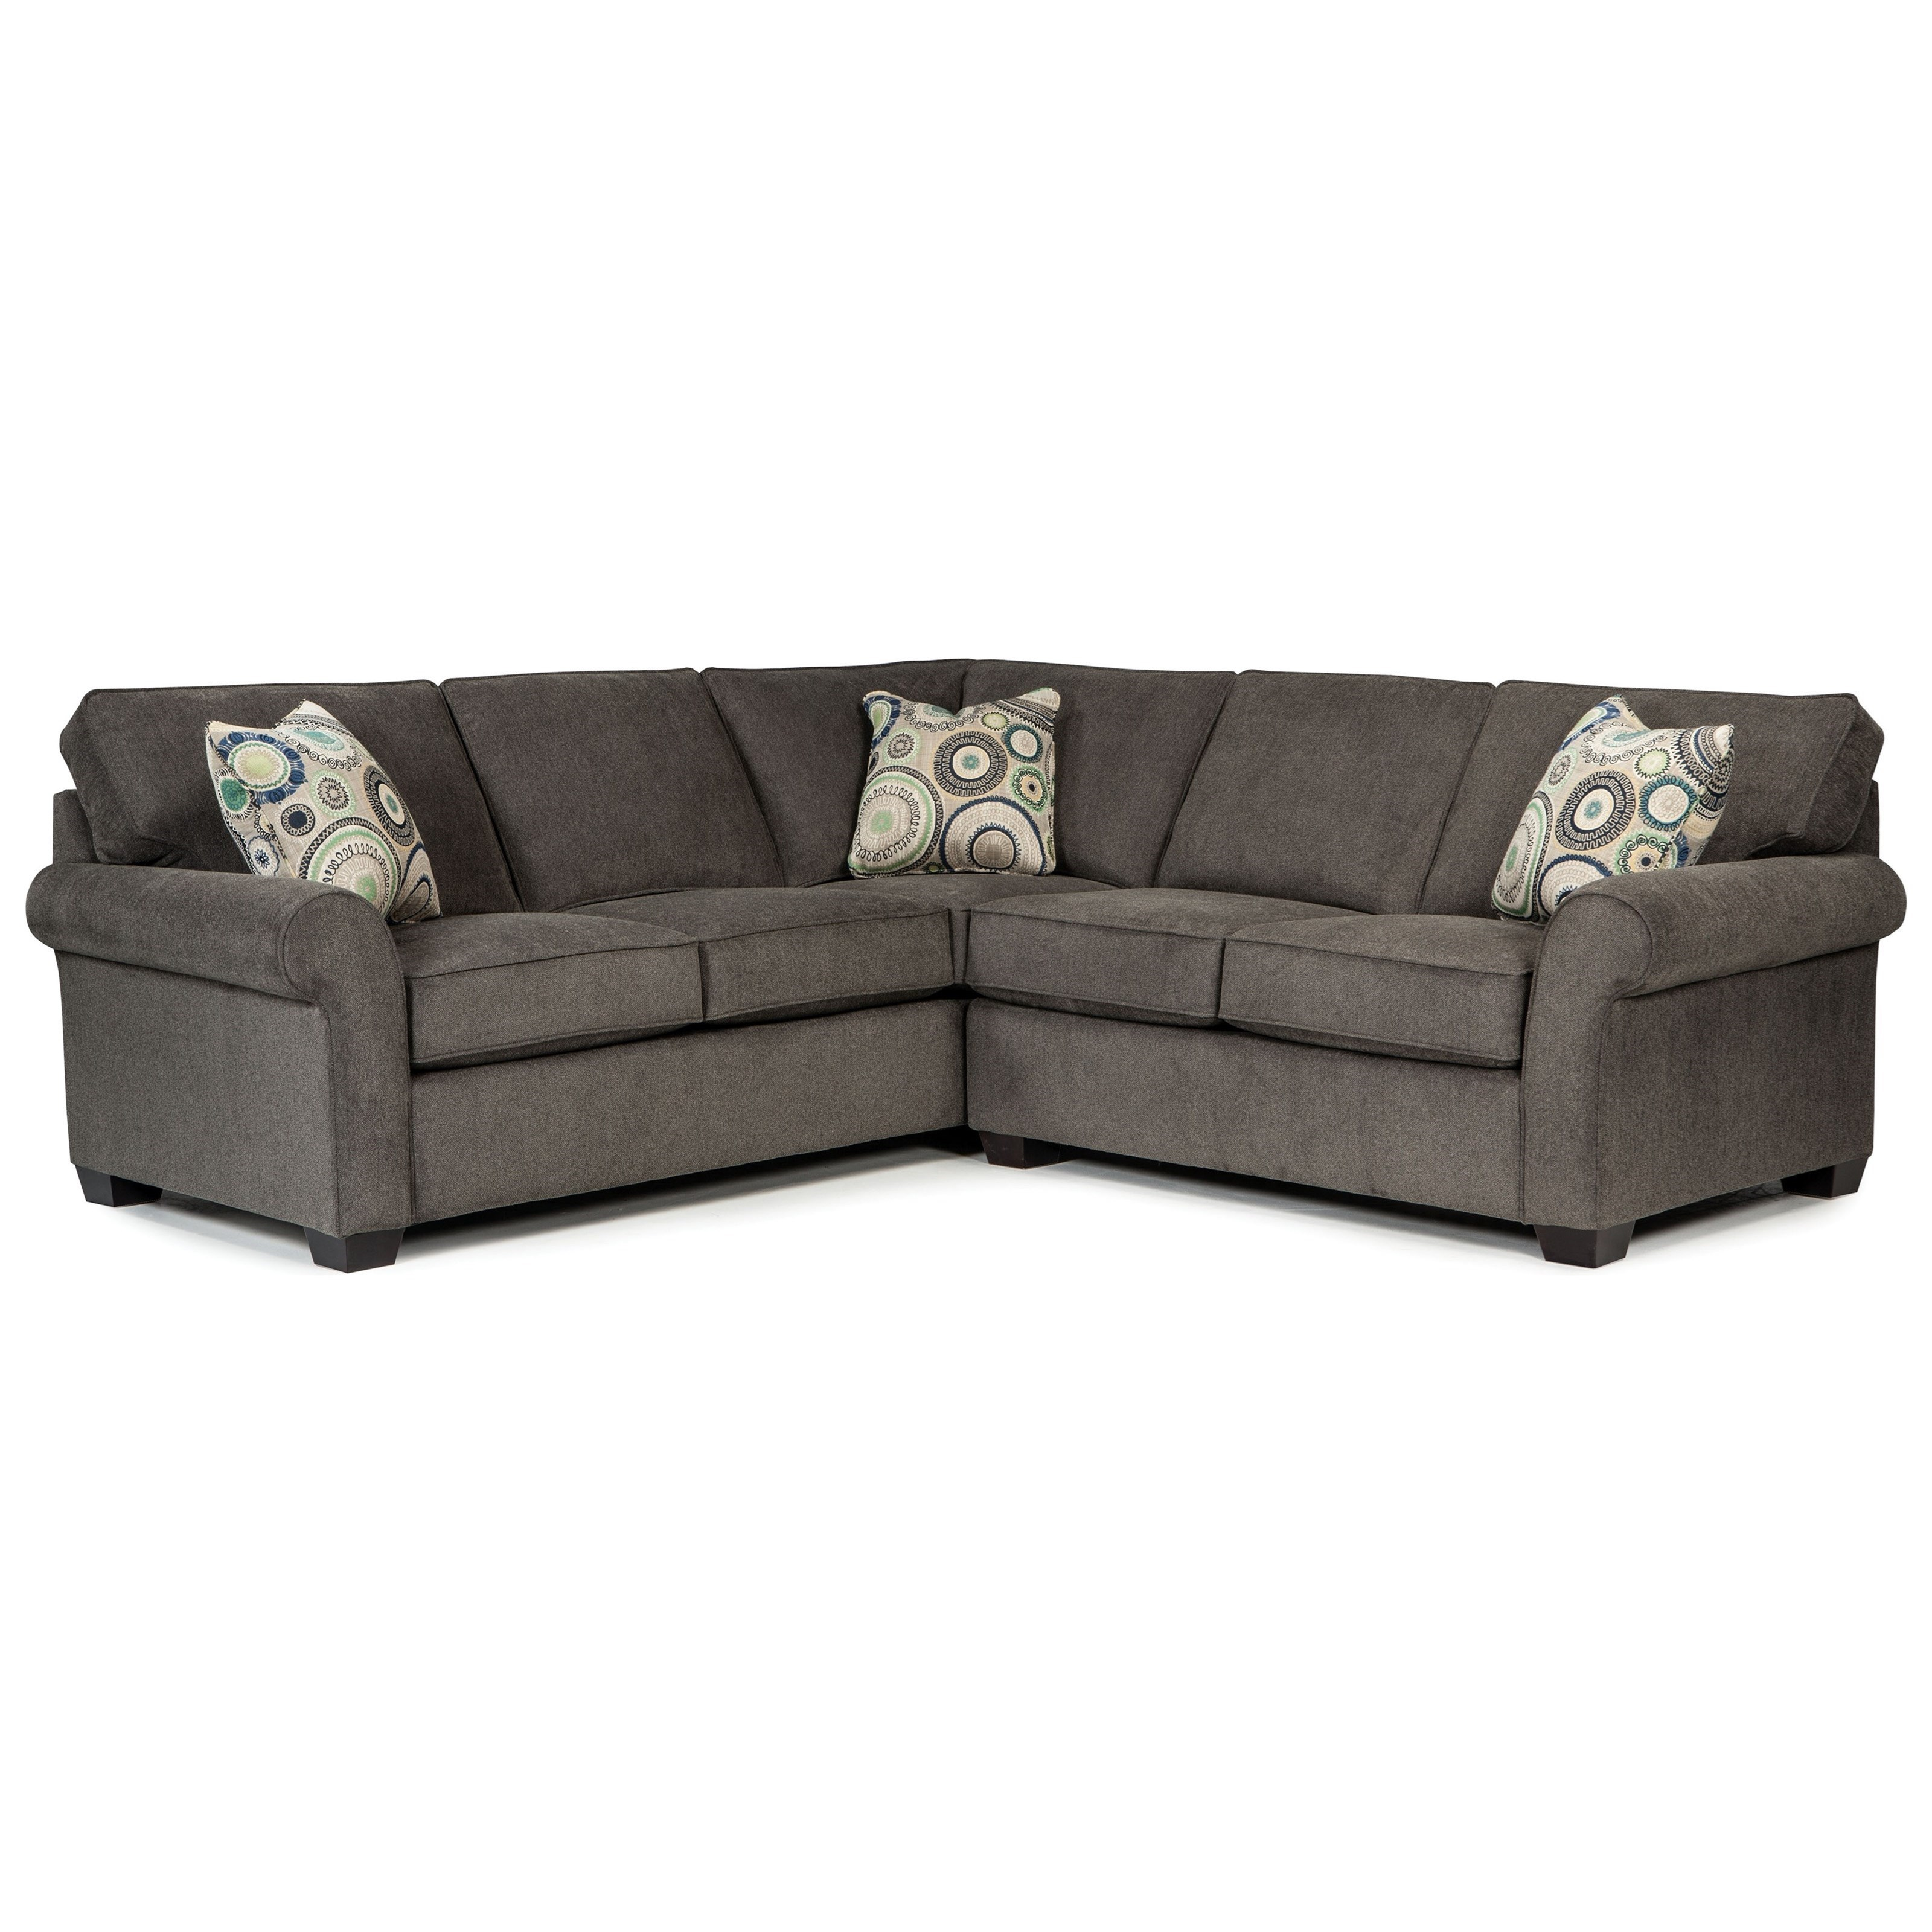 Exceptional Broyhill Furniture Ethan Two Piece Sectional With Corner Sofa